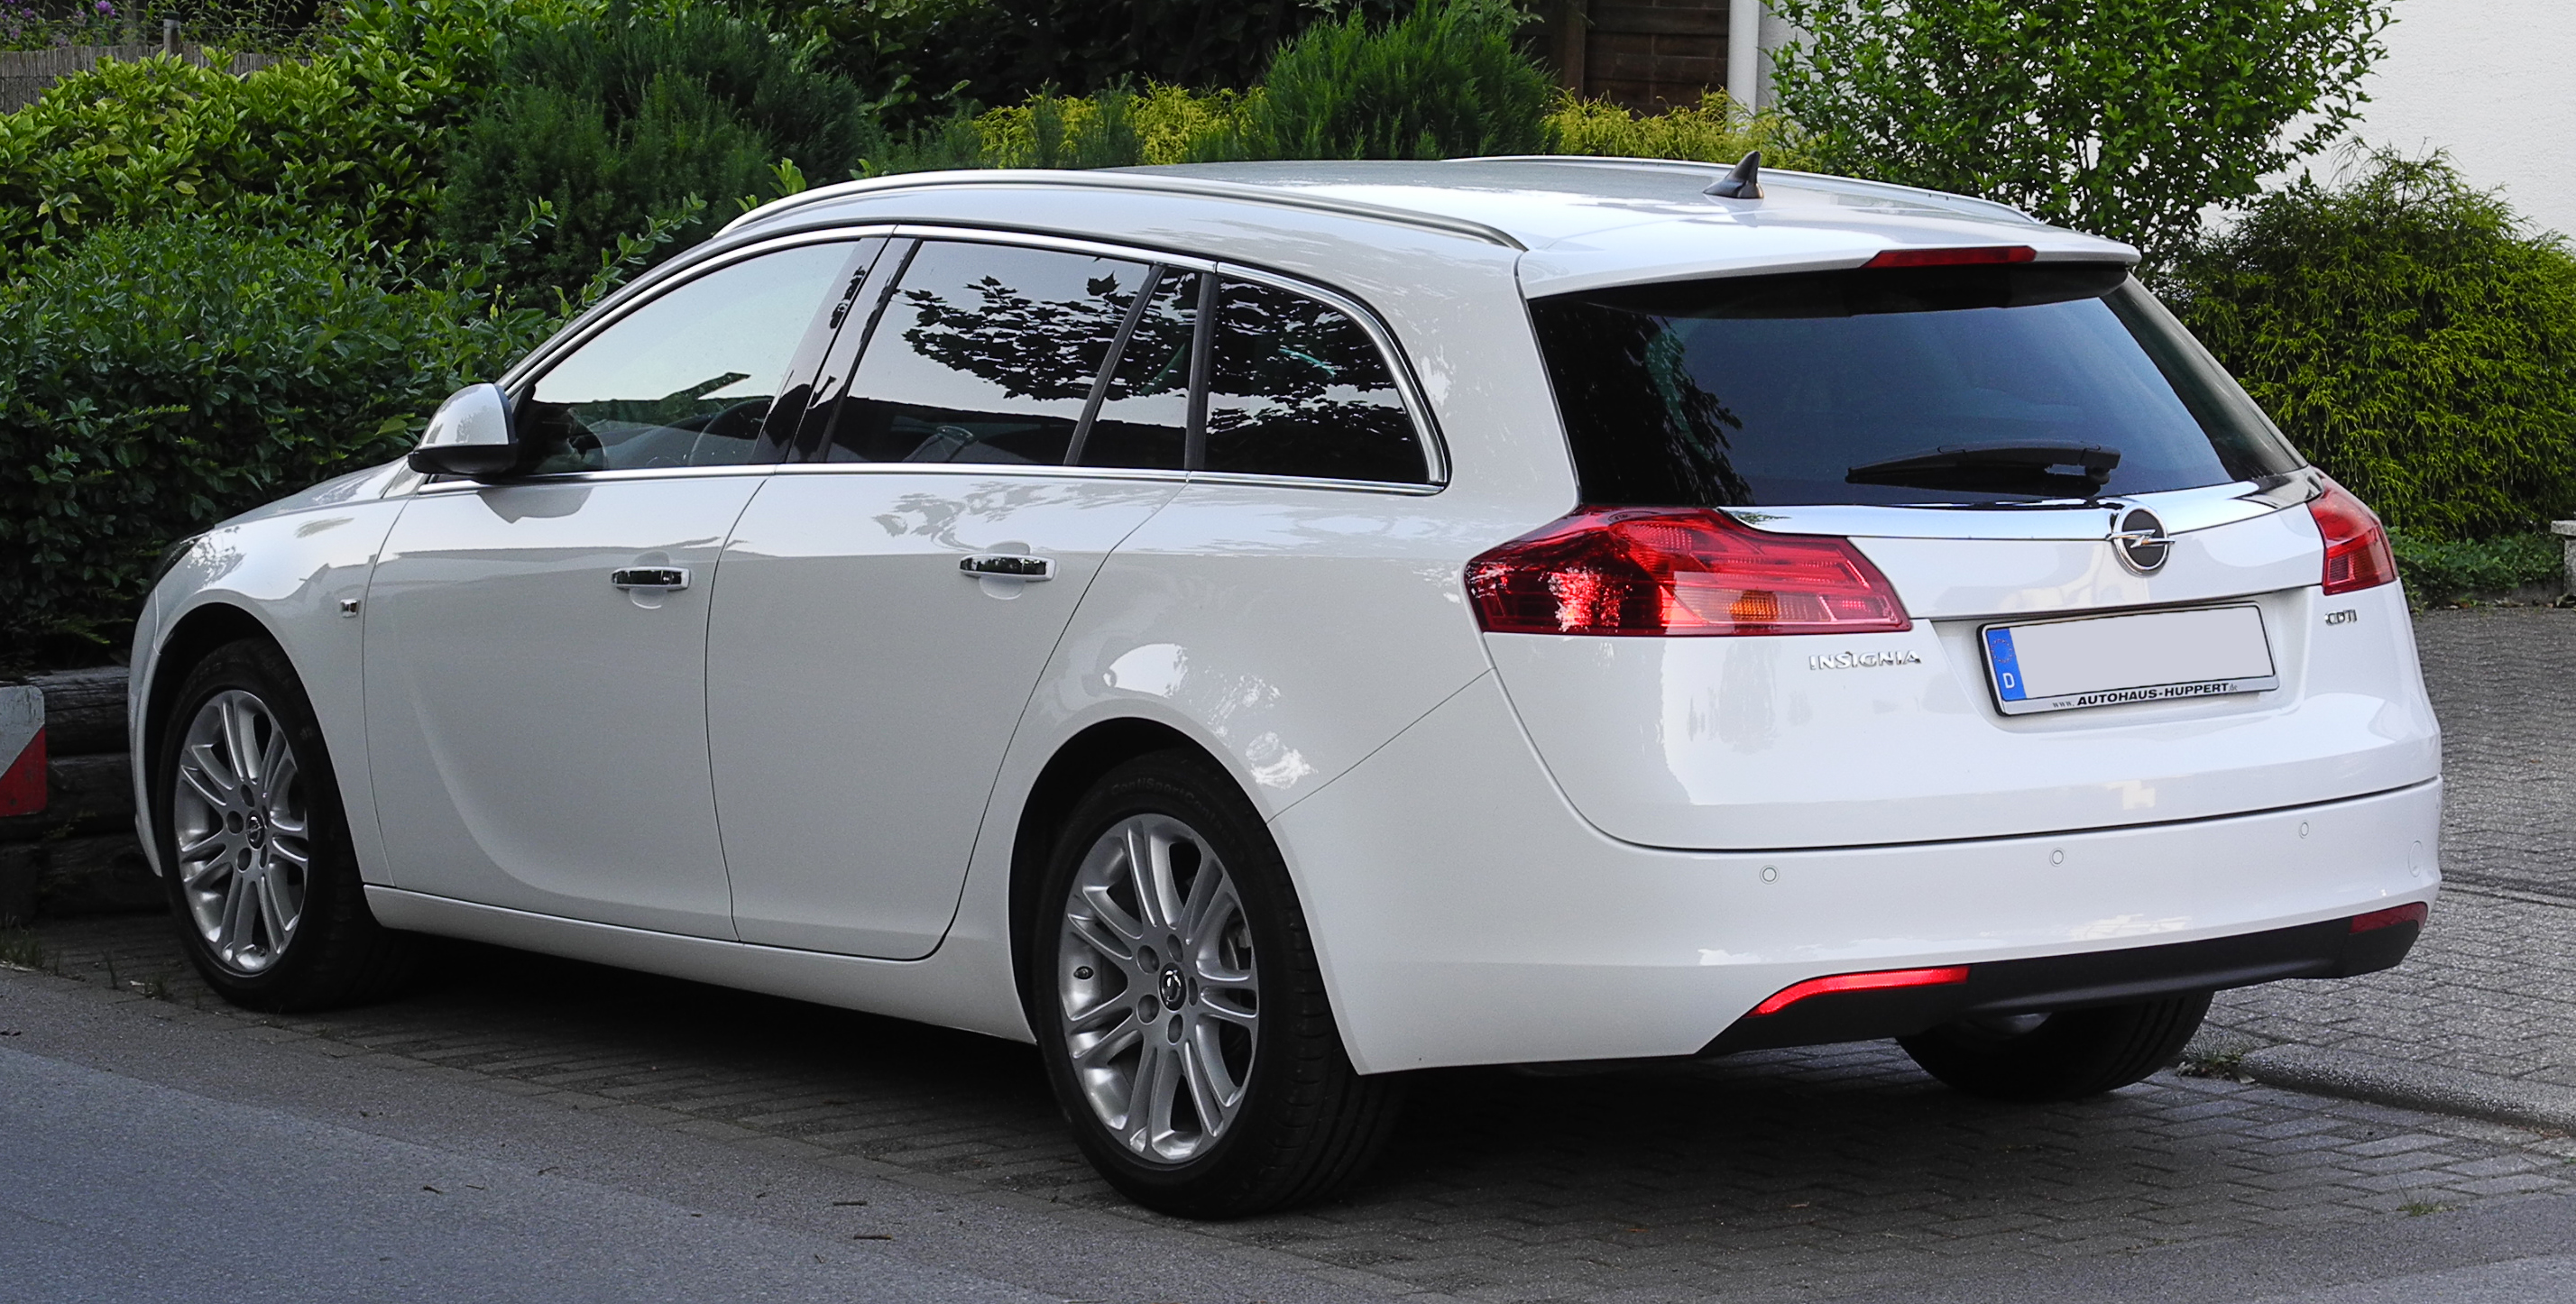 opel insignia 2 0 tdci technical details history photos on better parts ltd. Black Bedroom Furniture Sets. Home Design Ideas